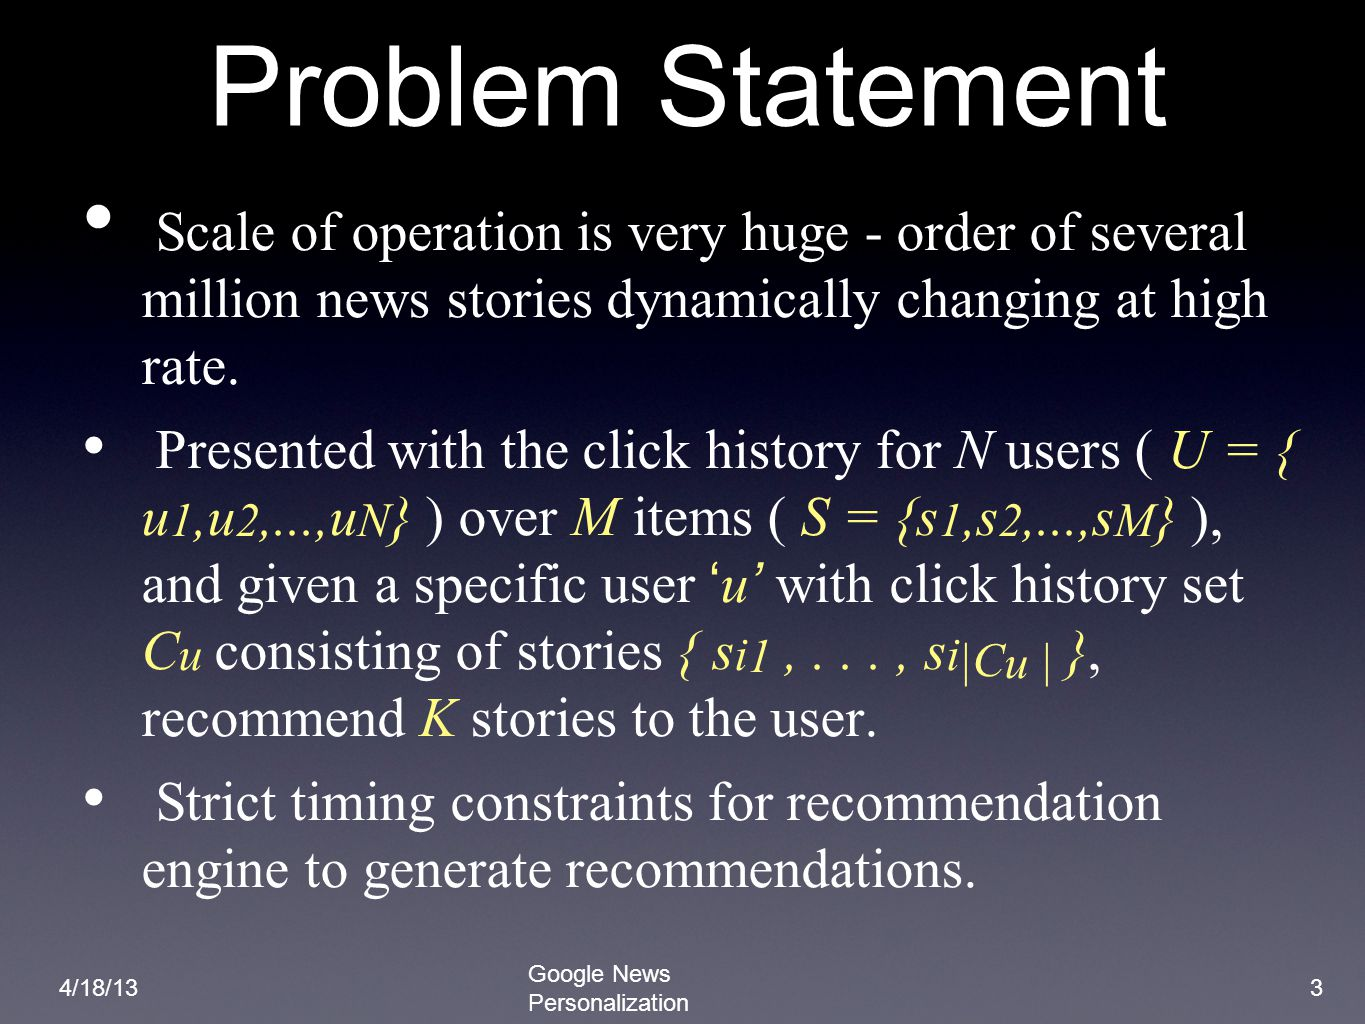 Problem Statement Scale of operation is very huge - order of several million news stories dynamically changing at high rate.